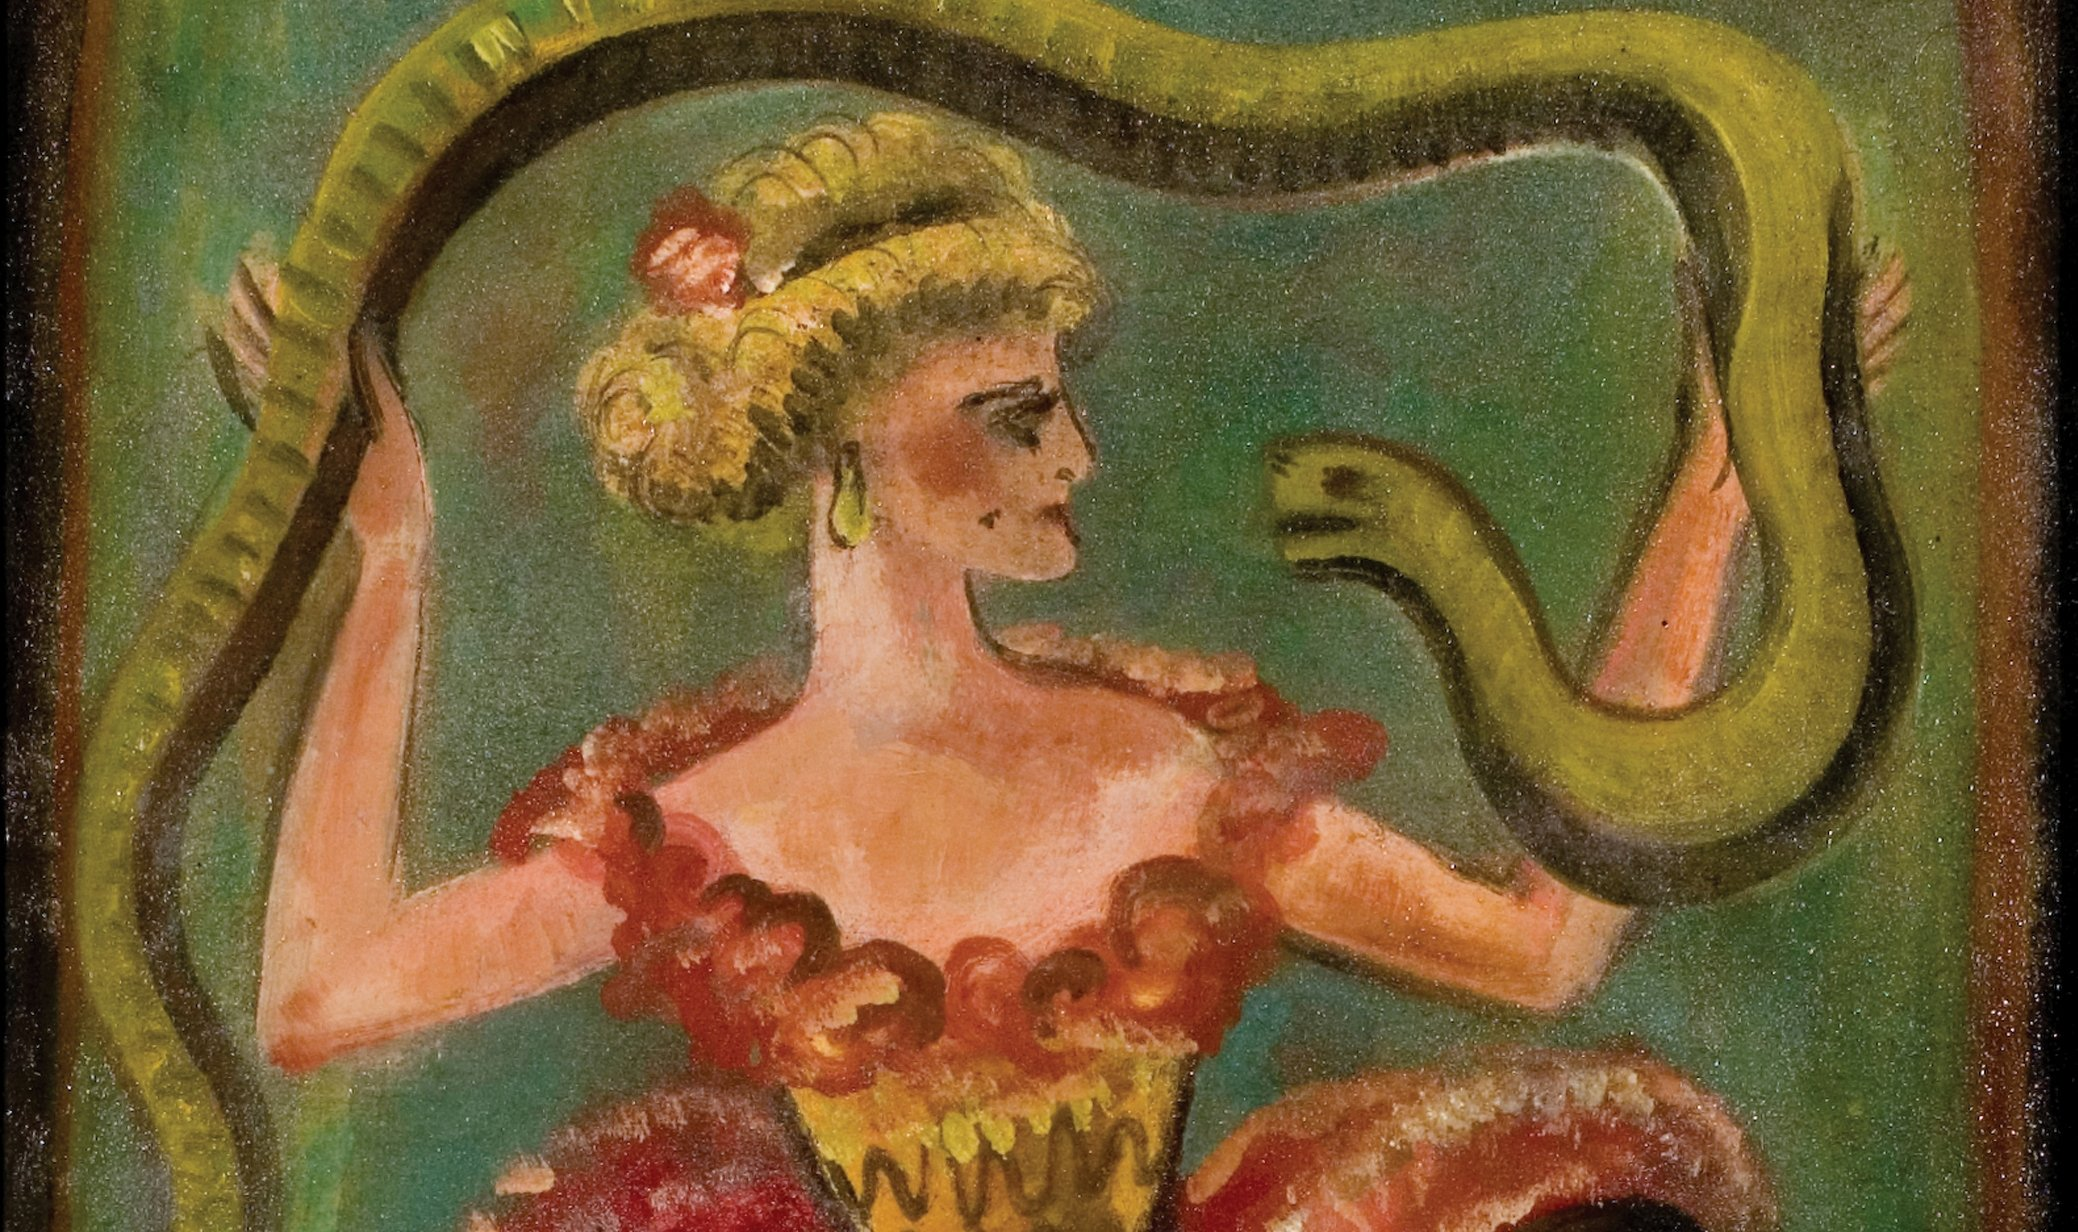 Weekend Events Around Town 114 116 Chicago Tonight  : Louis20Michel20EilshemiusSnake20DancerRicco20Maresca20Gallerylarge0 from chicagotonight.wttw.com size 2078 x 1232 jpeg 1861kB